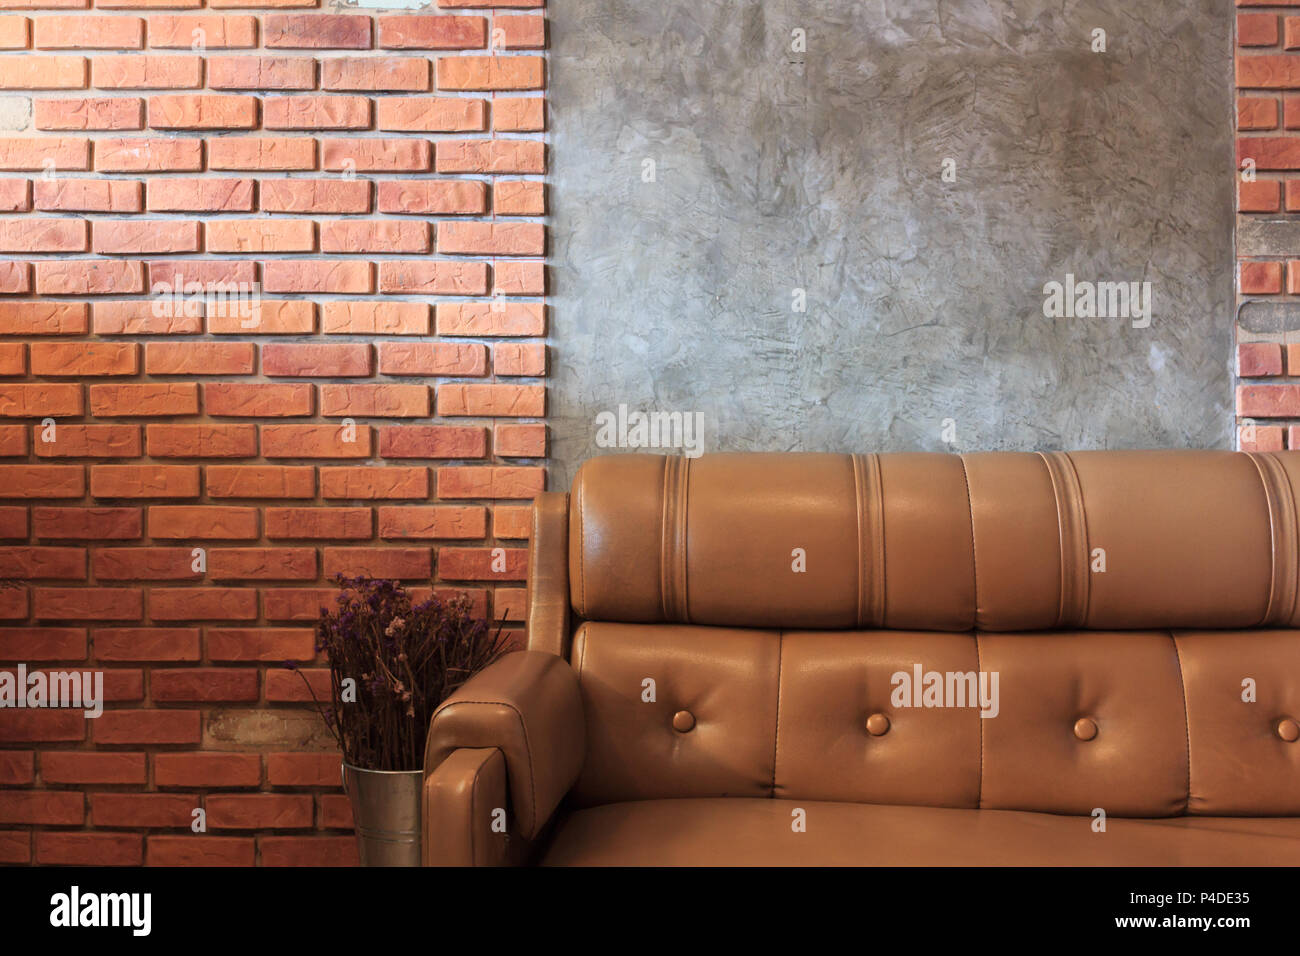 vintage room with sofa set brick wall background in the cafe stock photo alamy https www alamy com vintage room with sofa set brick wall background in the cafe image209279481 html